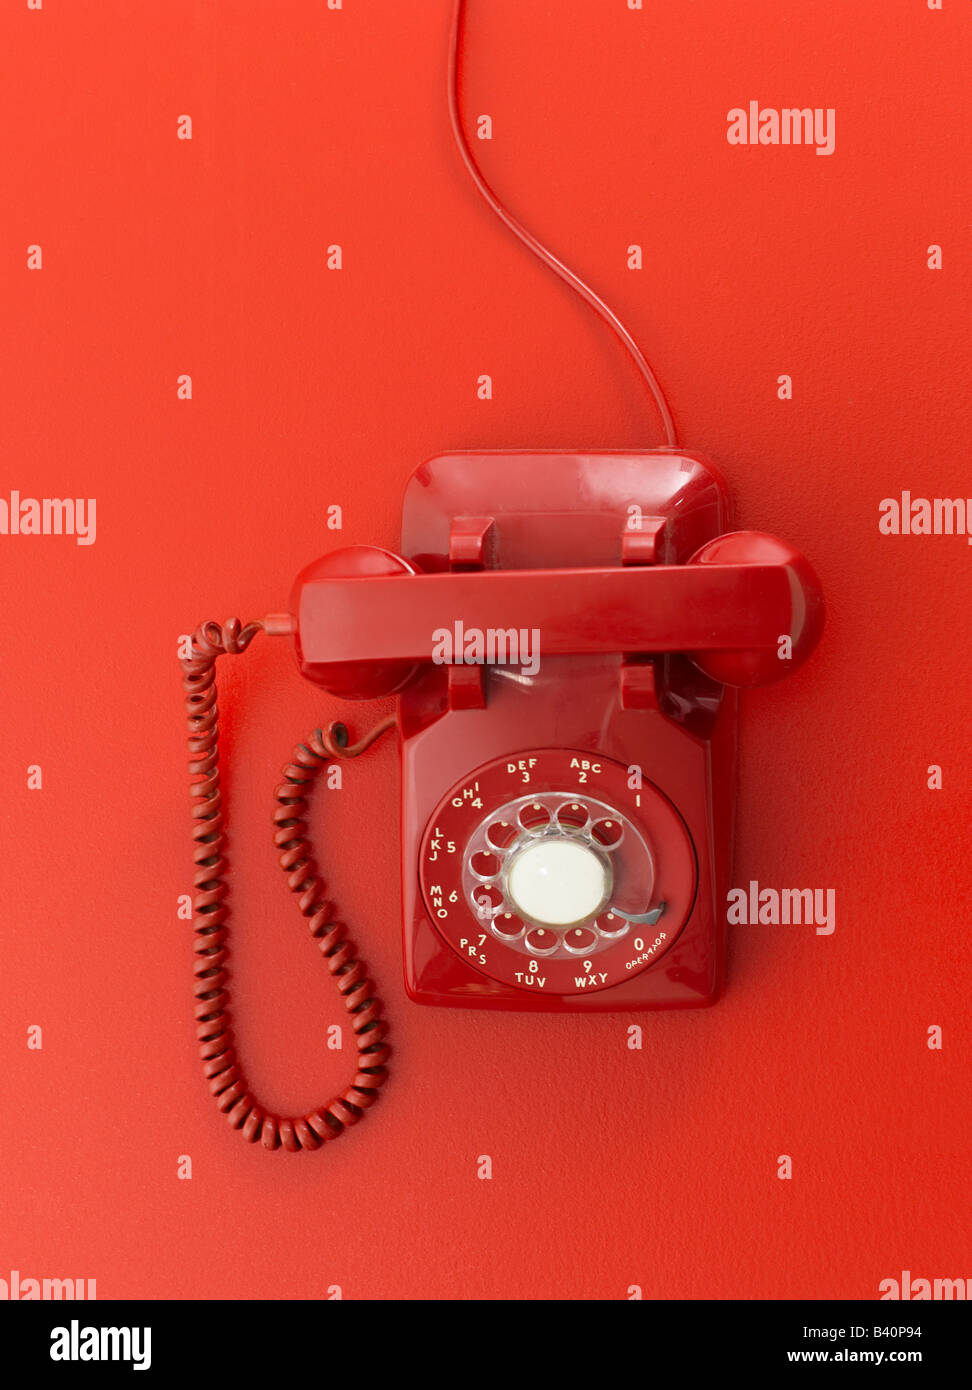 Red retro telephone on red background - Stock Image